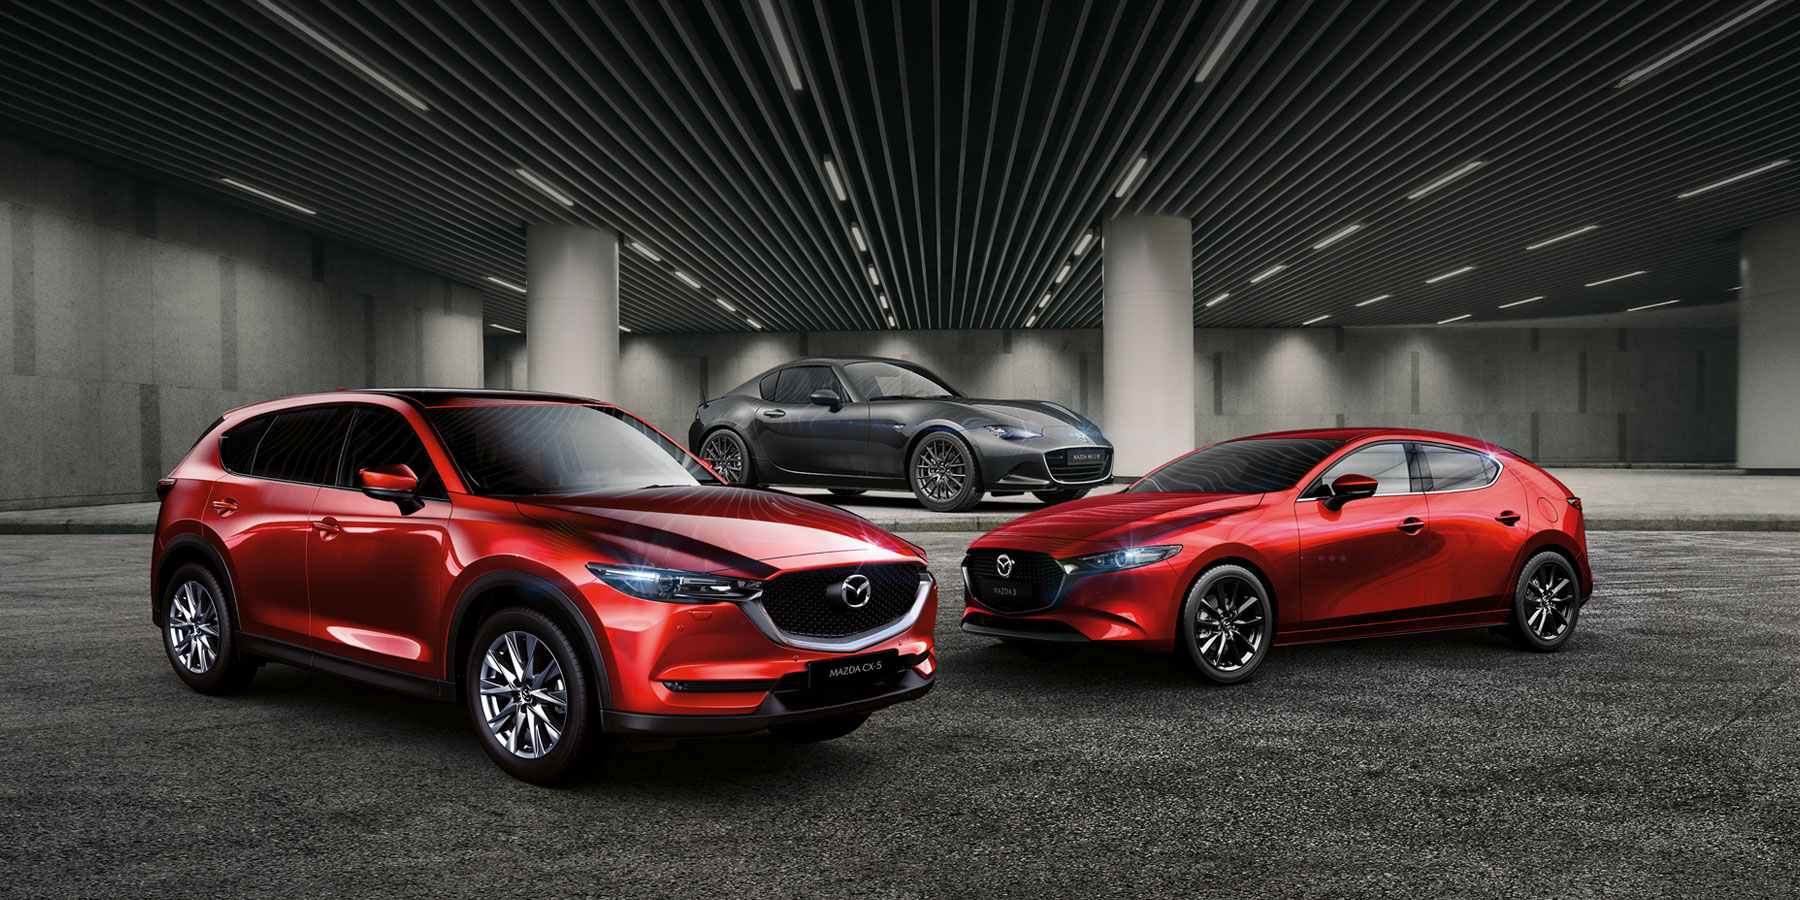 https://maier.mazda.at/wp-content/uploads/sites/53/2020/07/Jahrhundertmoment_1800x900.jpg